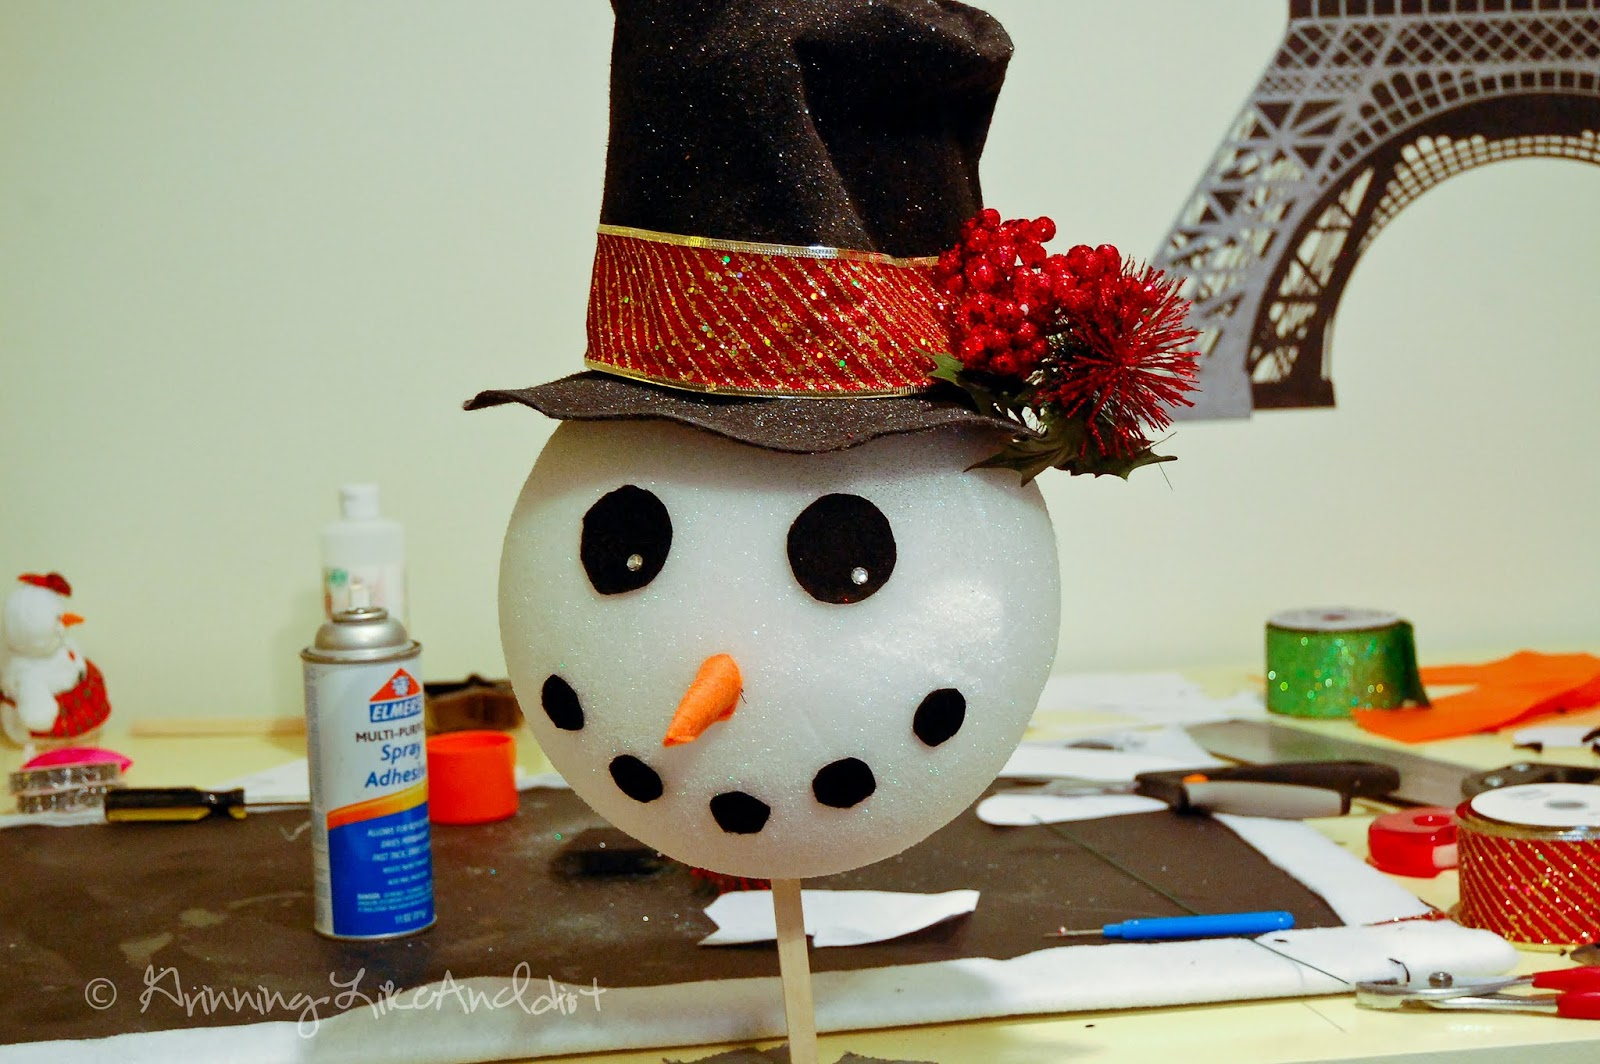 How to make a snowman christmas tree topper - How To Make A Snowman Christmas Tree Topper 11